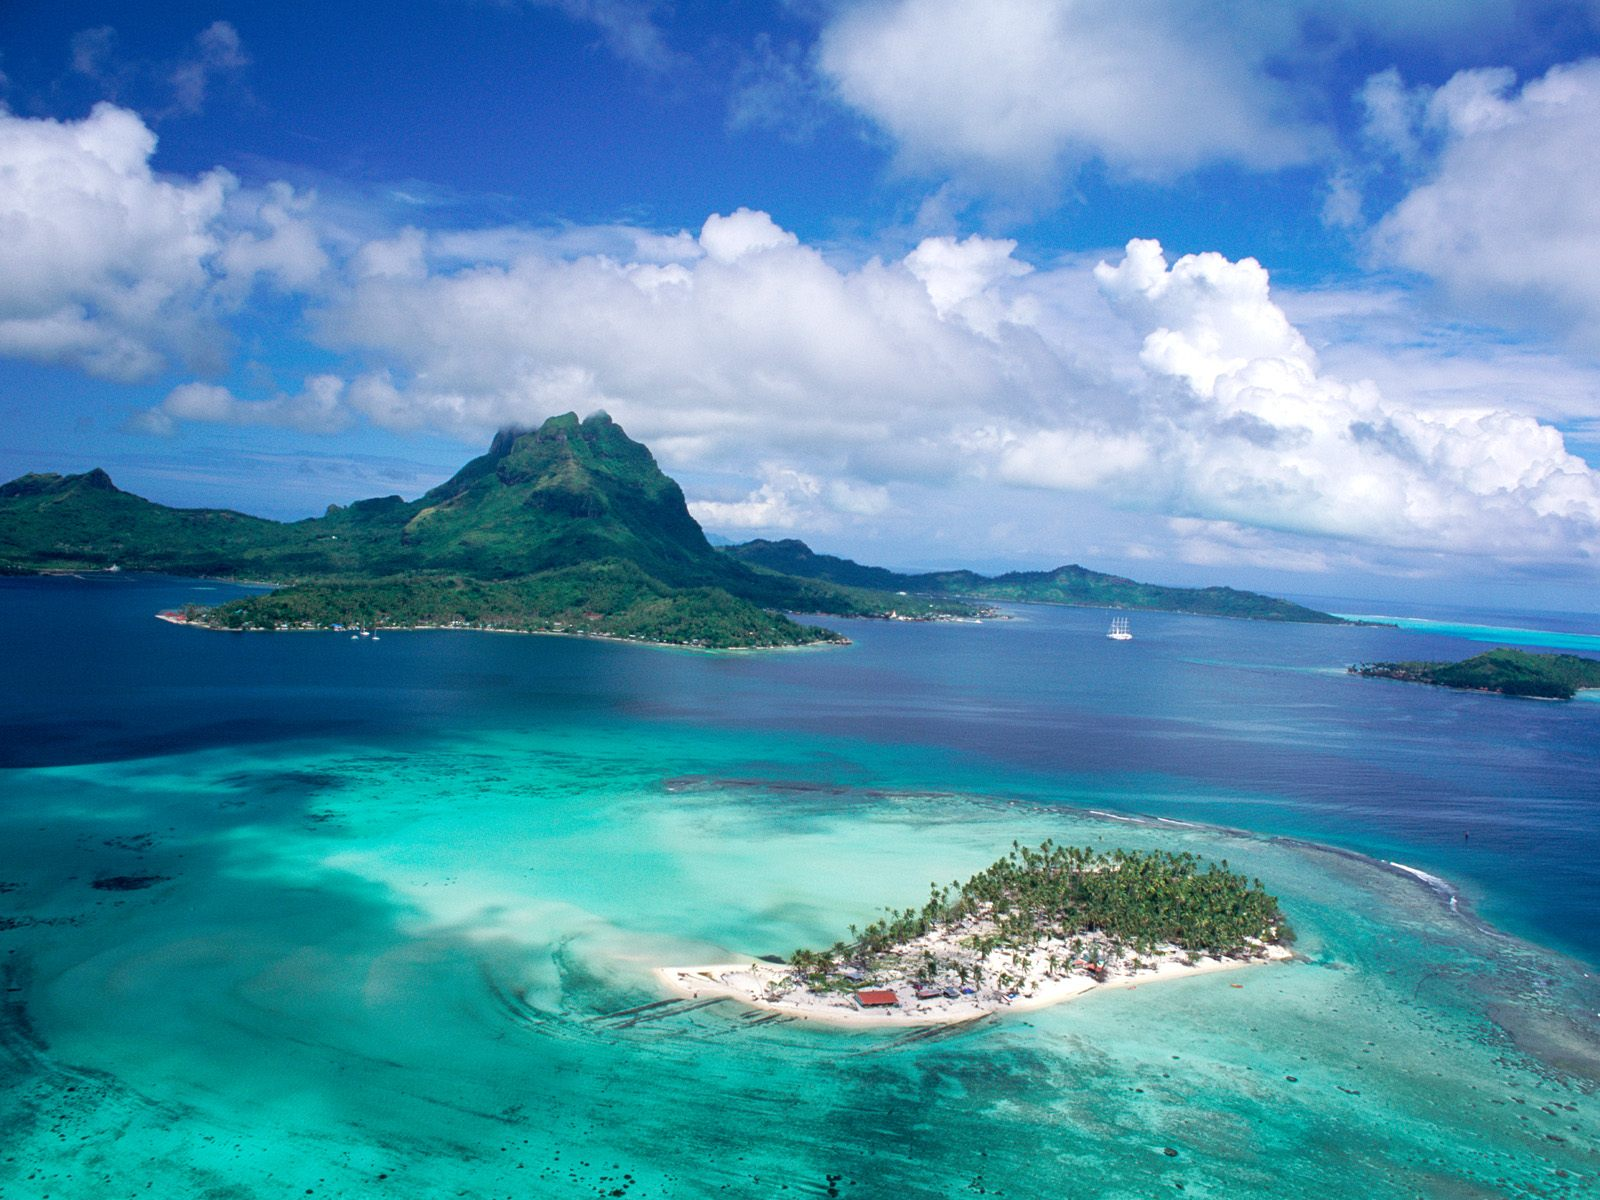 Hd Tropical Island Beach Paradise Wallpapers And Backgrounds: French Polynesia Tahiti Island Wallpapers HD Photos